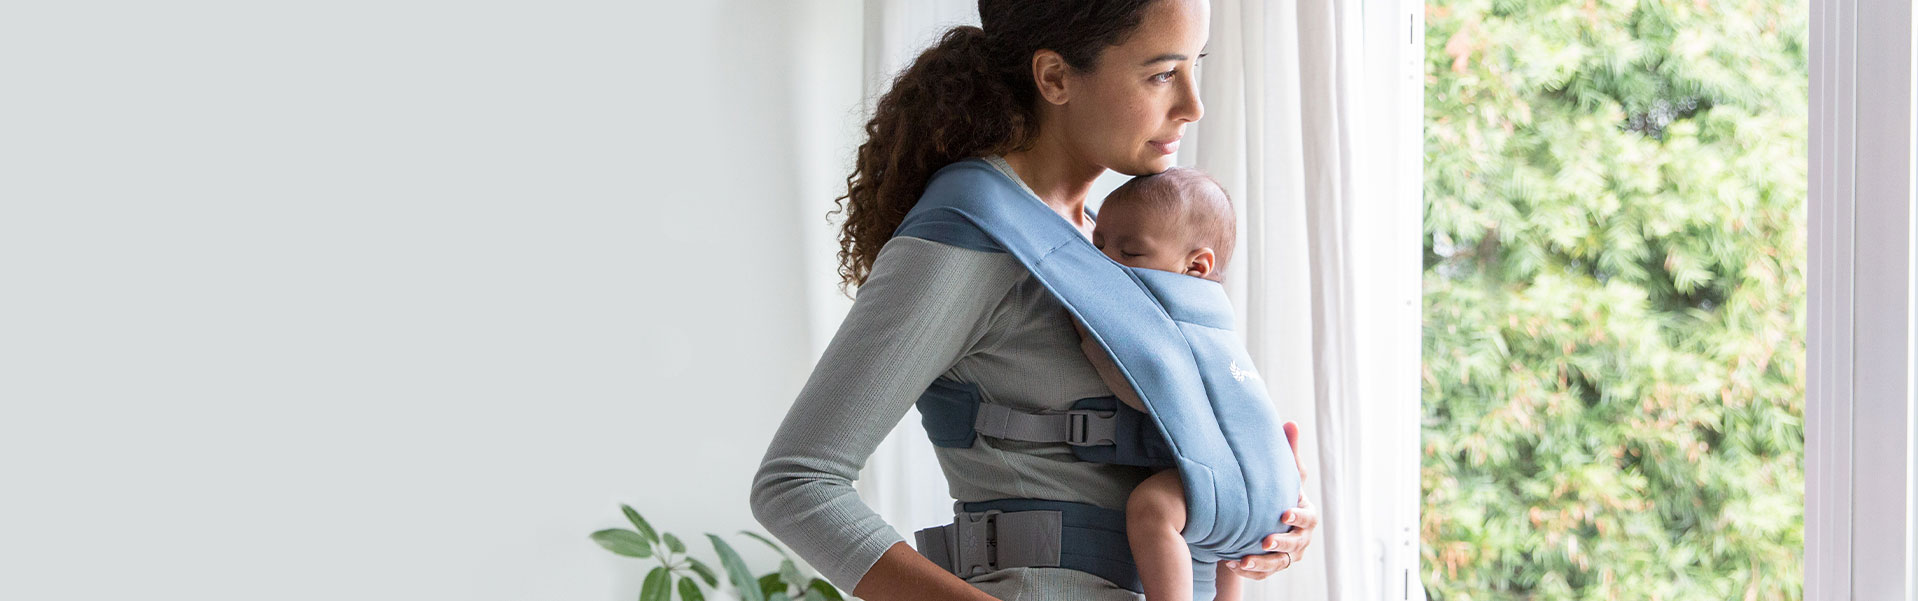 Ergonomic Baby Carriers and Baby Carrier Products | Ergobaby